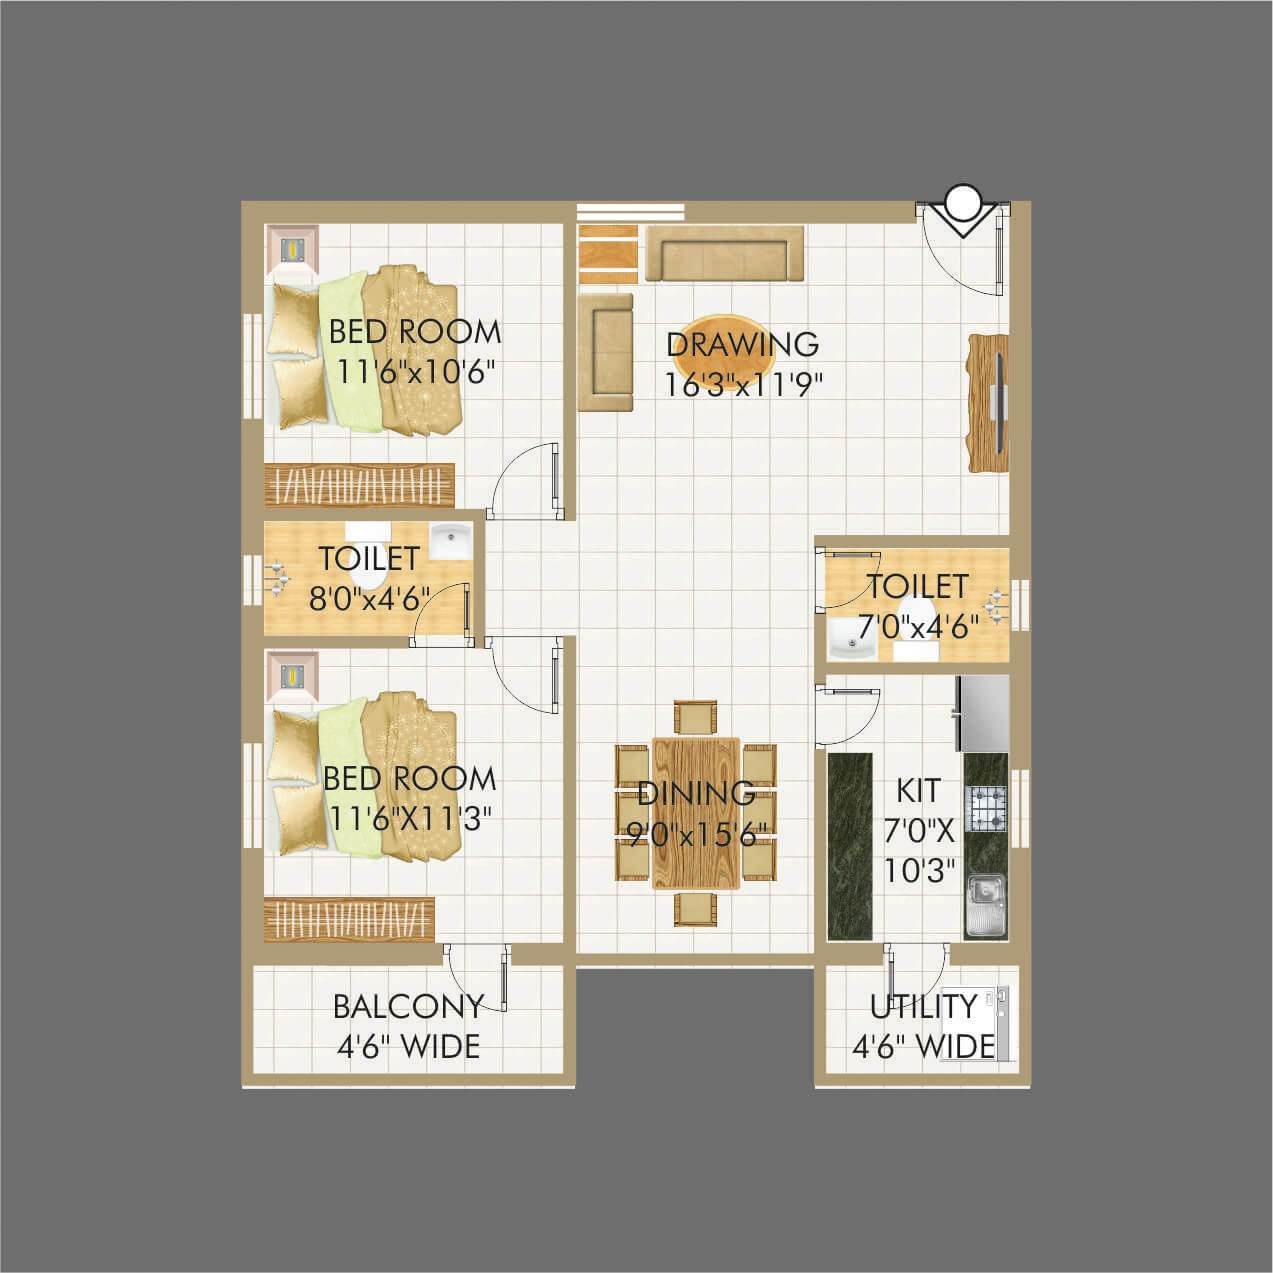 Lakecity floorplan 1233sqft north facing